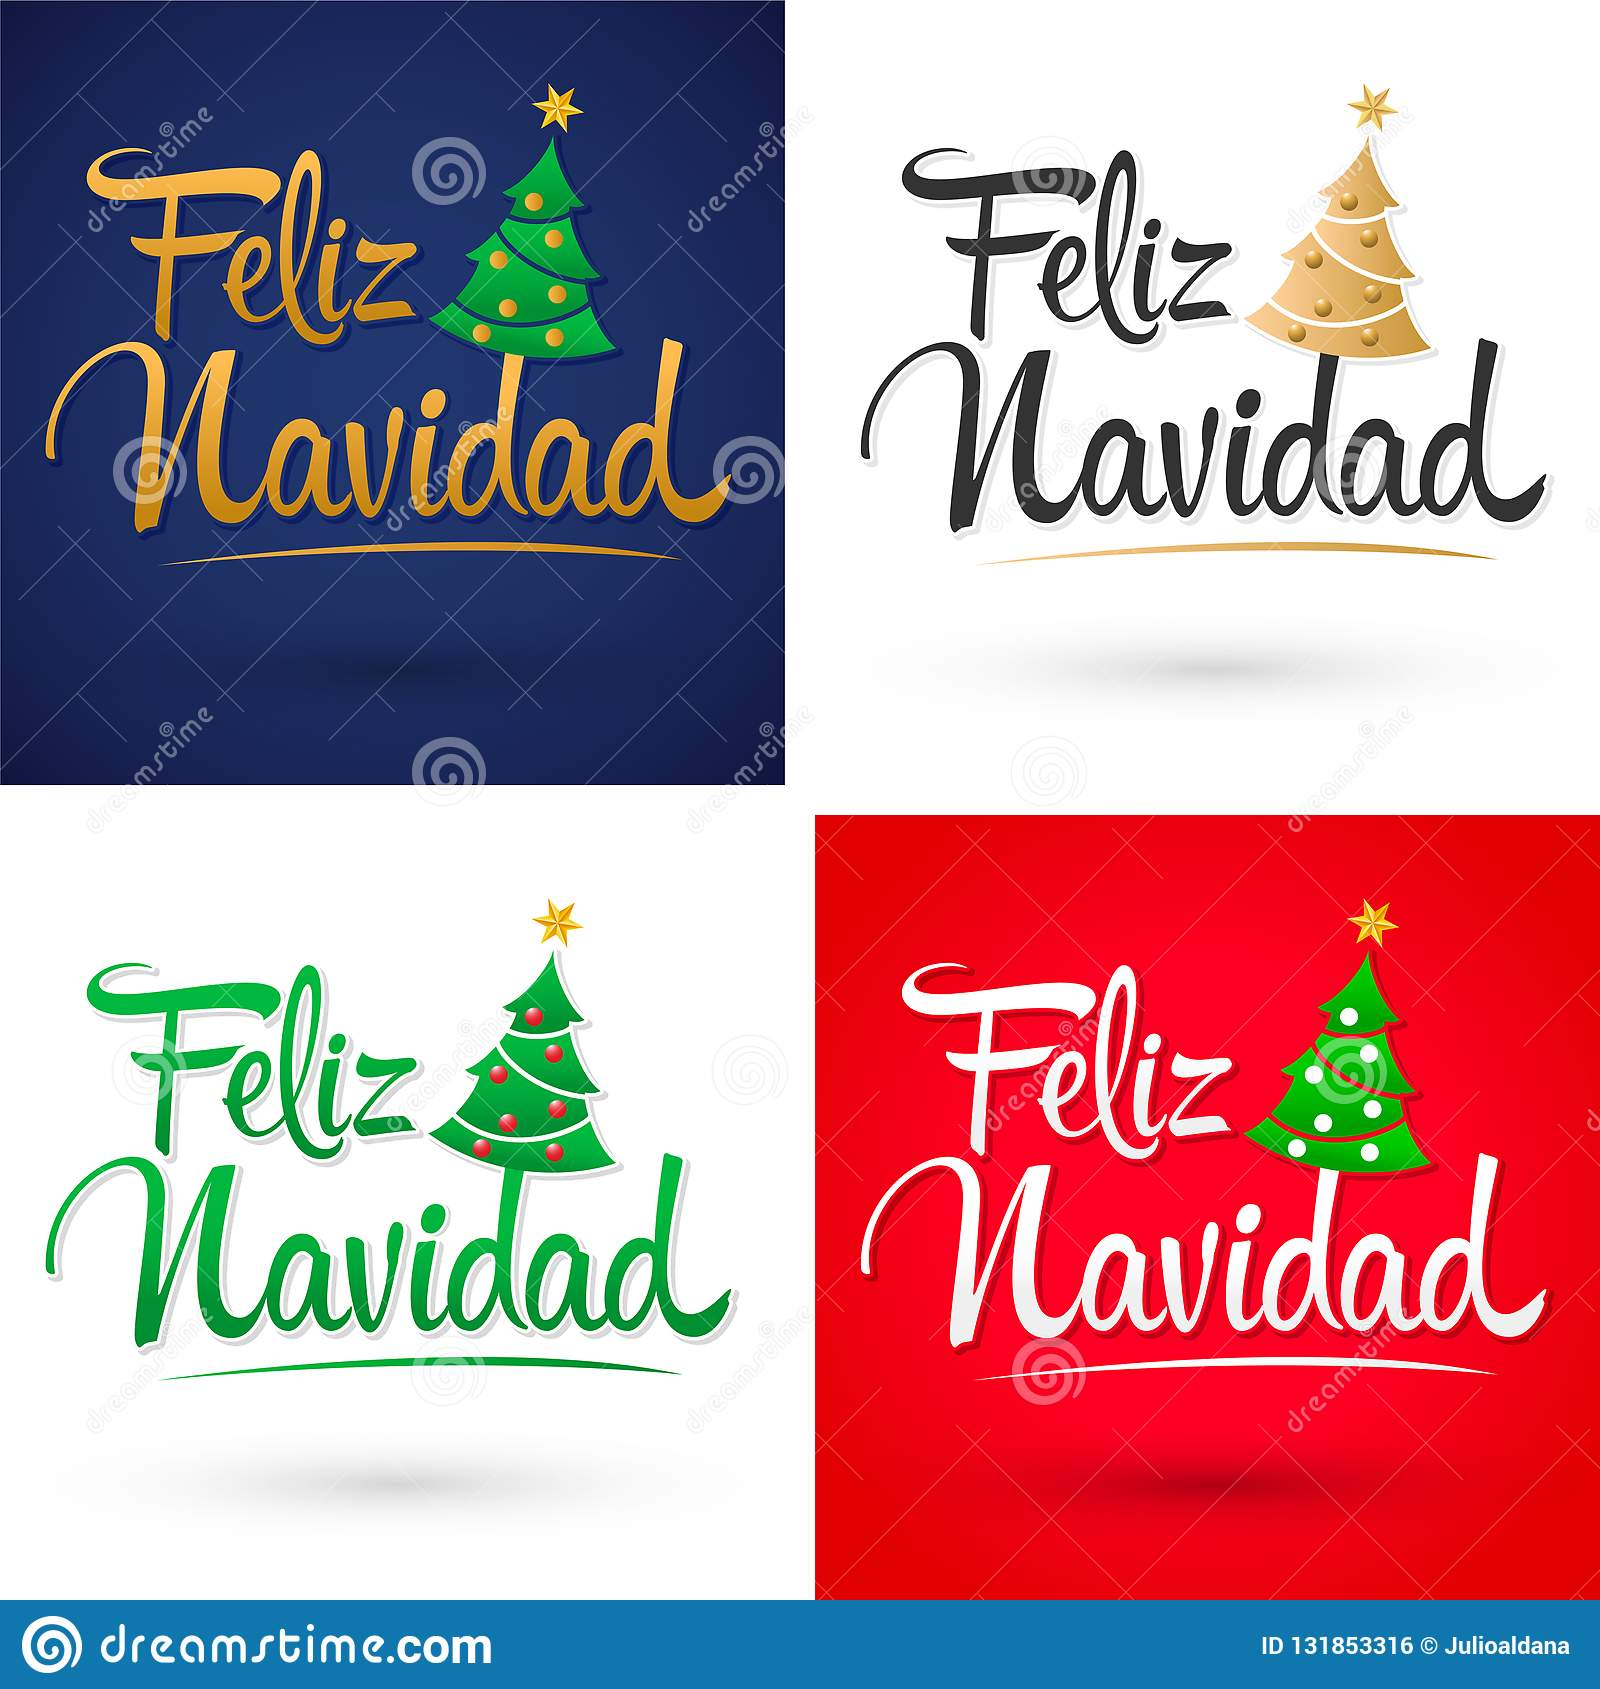 Feliz Navidad, Merry Christmas Spanish Text Vector ...